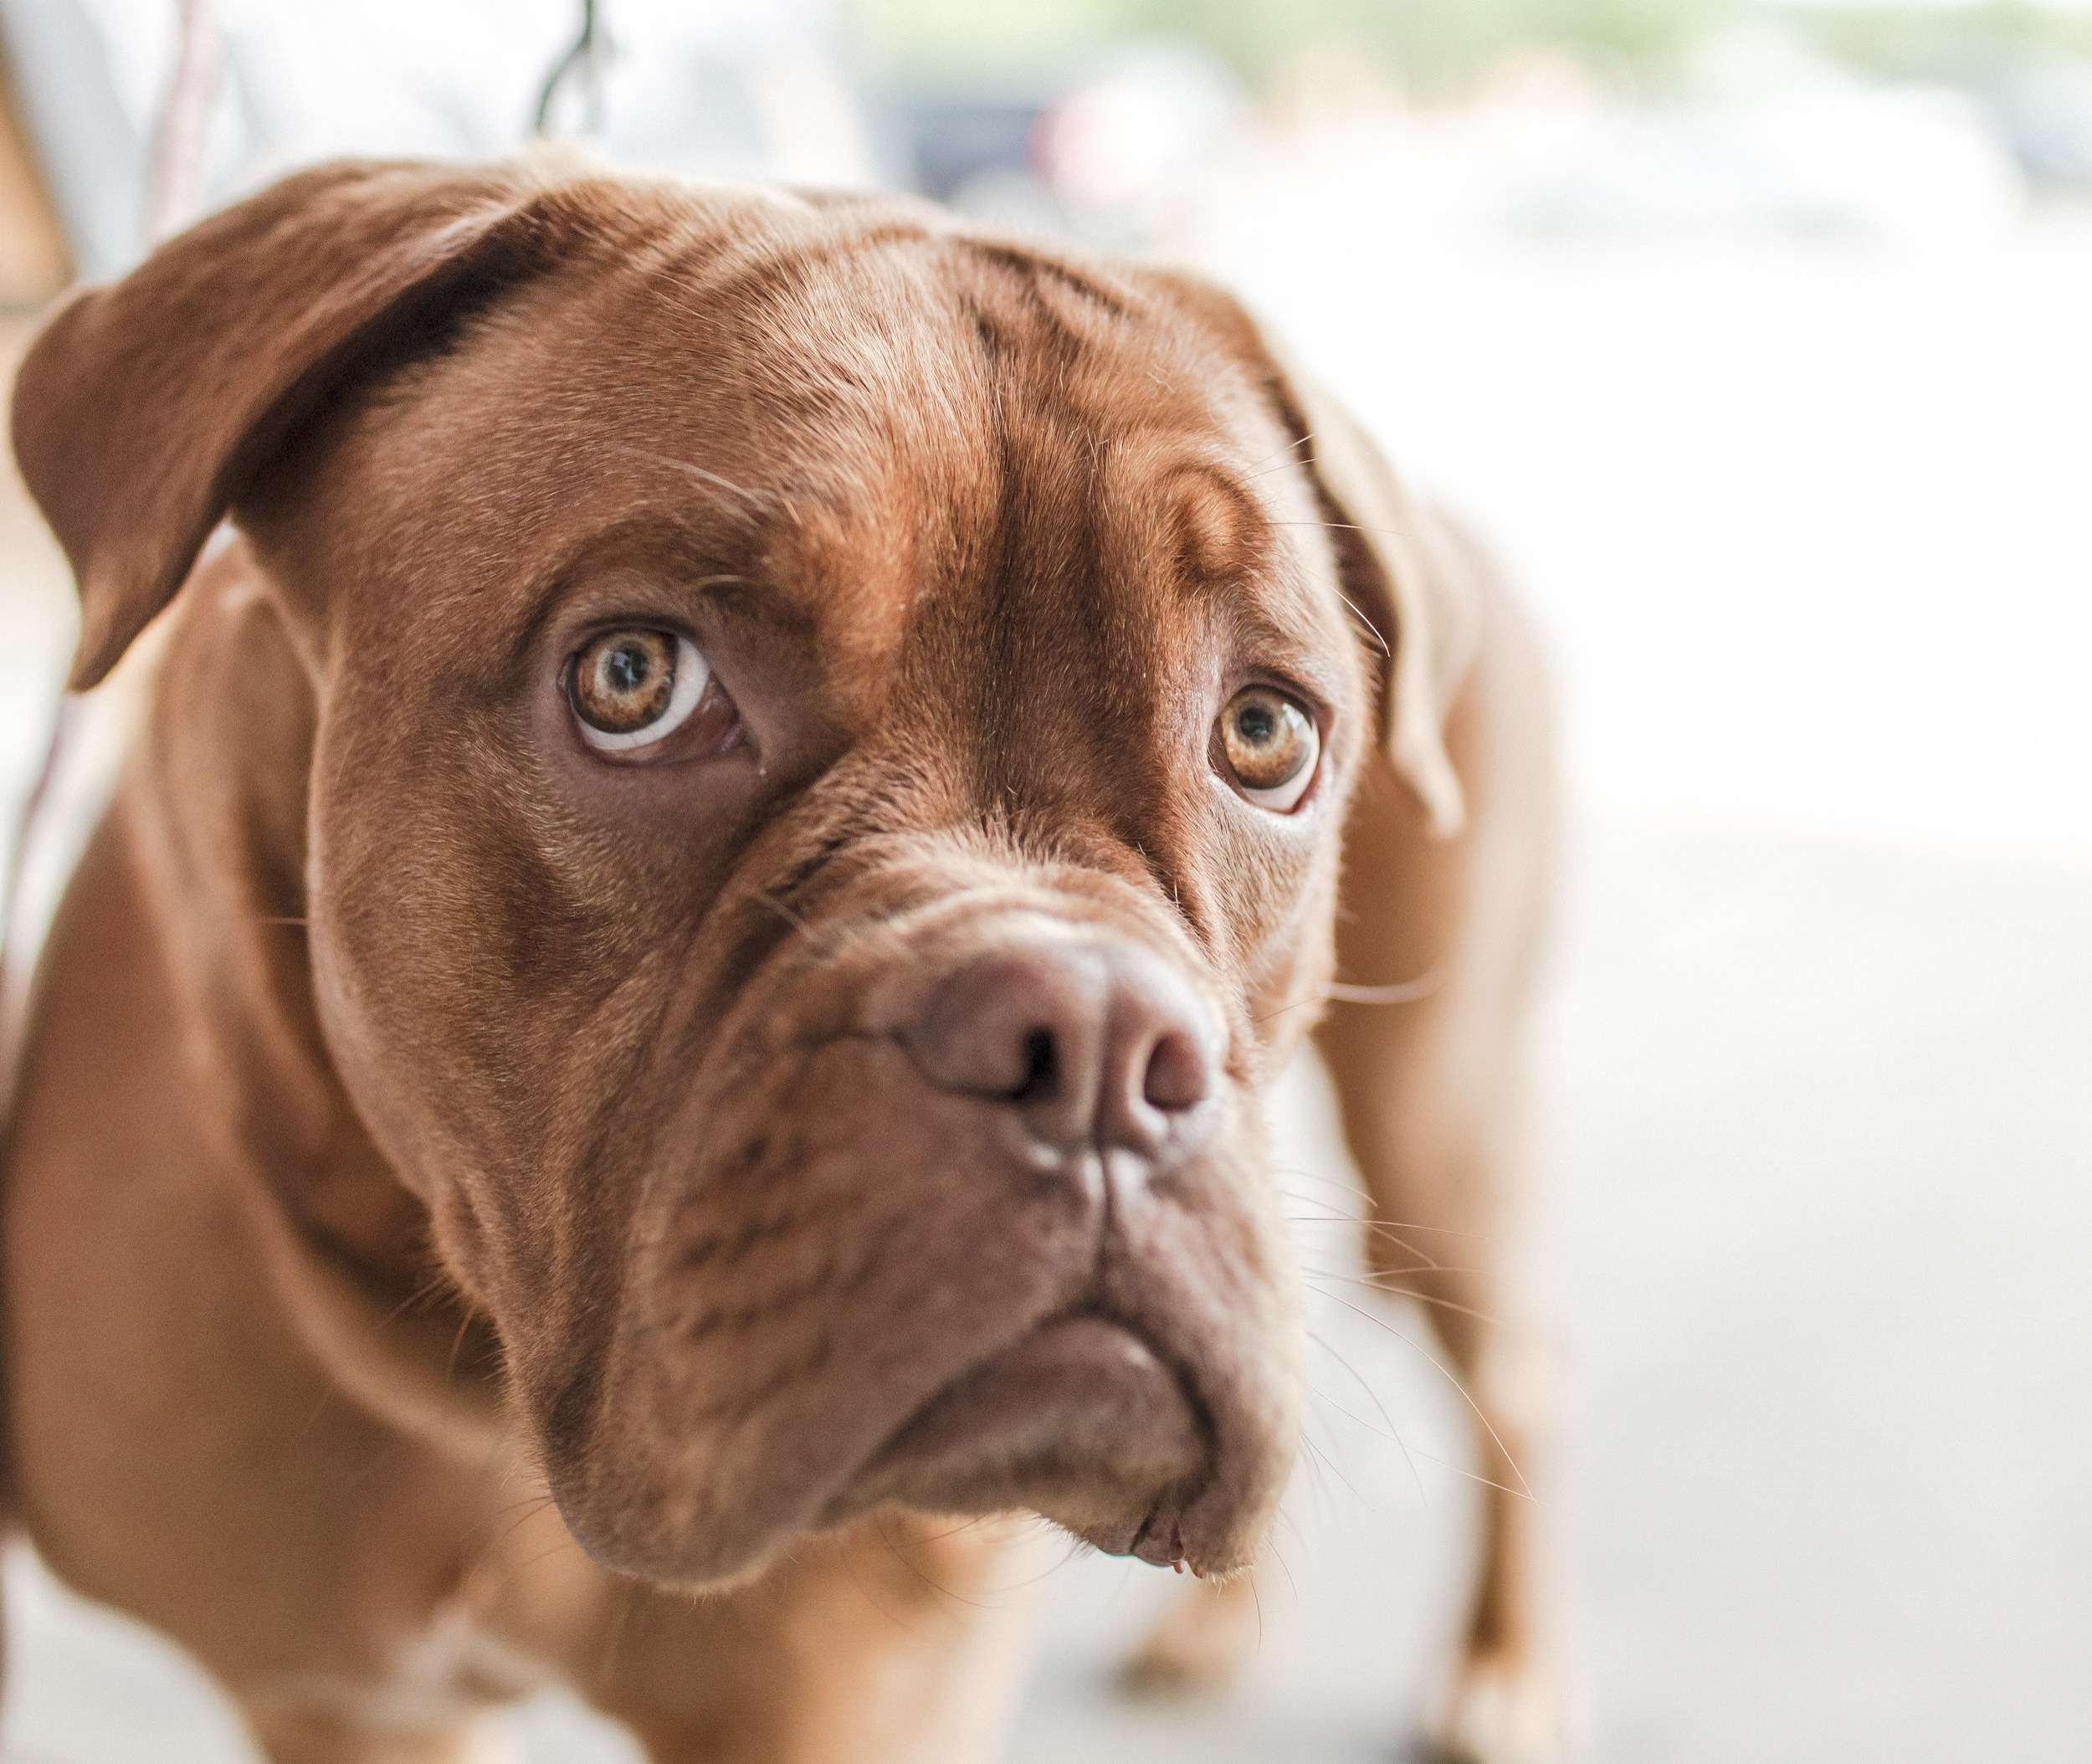 white coat syndrome - anxiety at vet